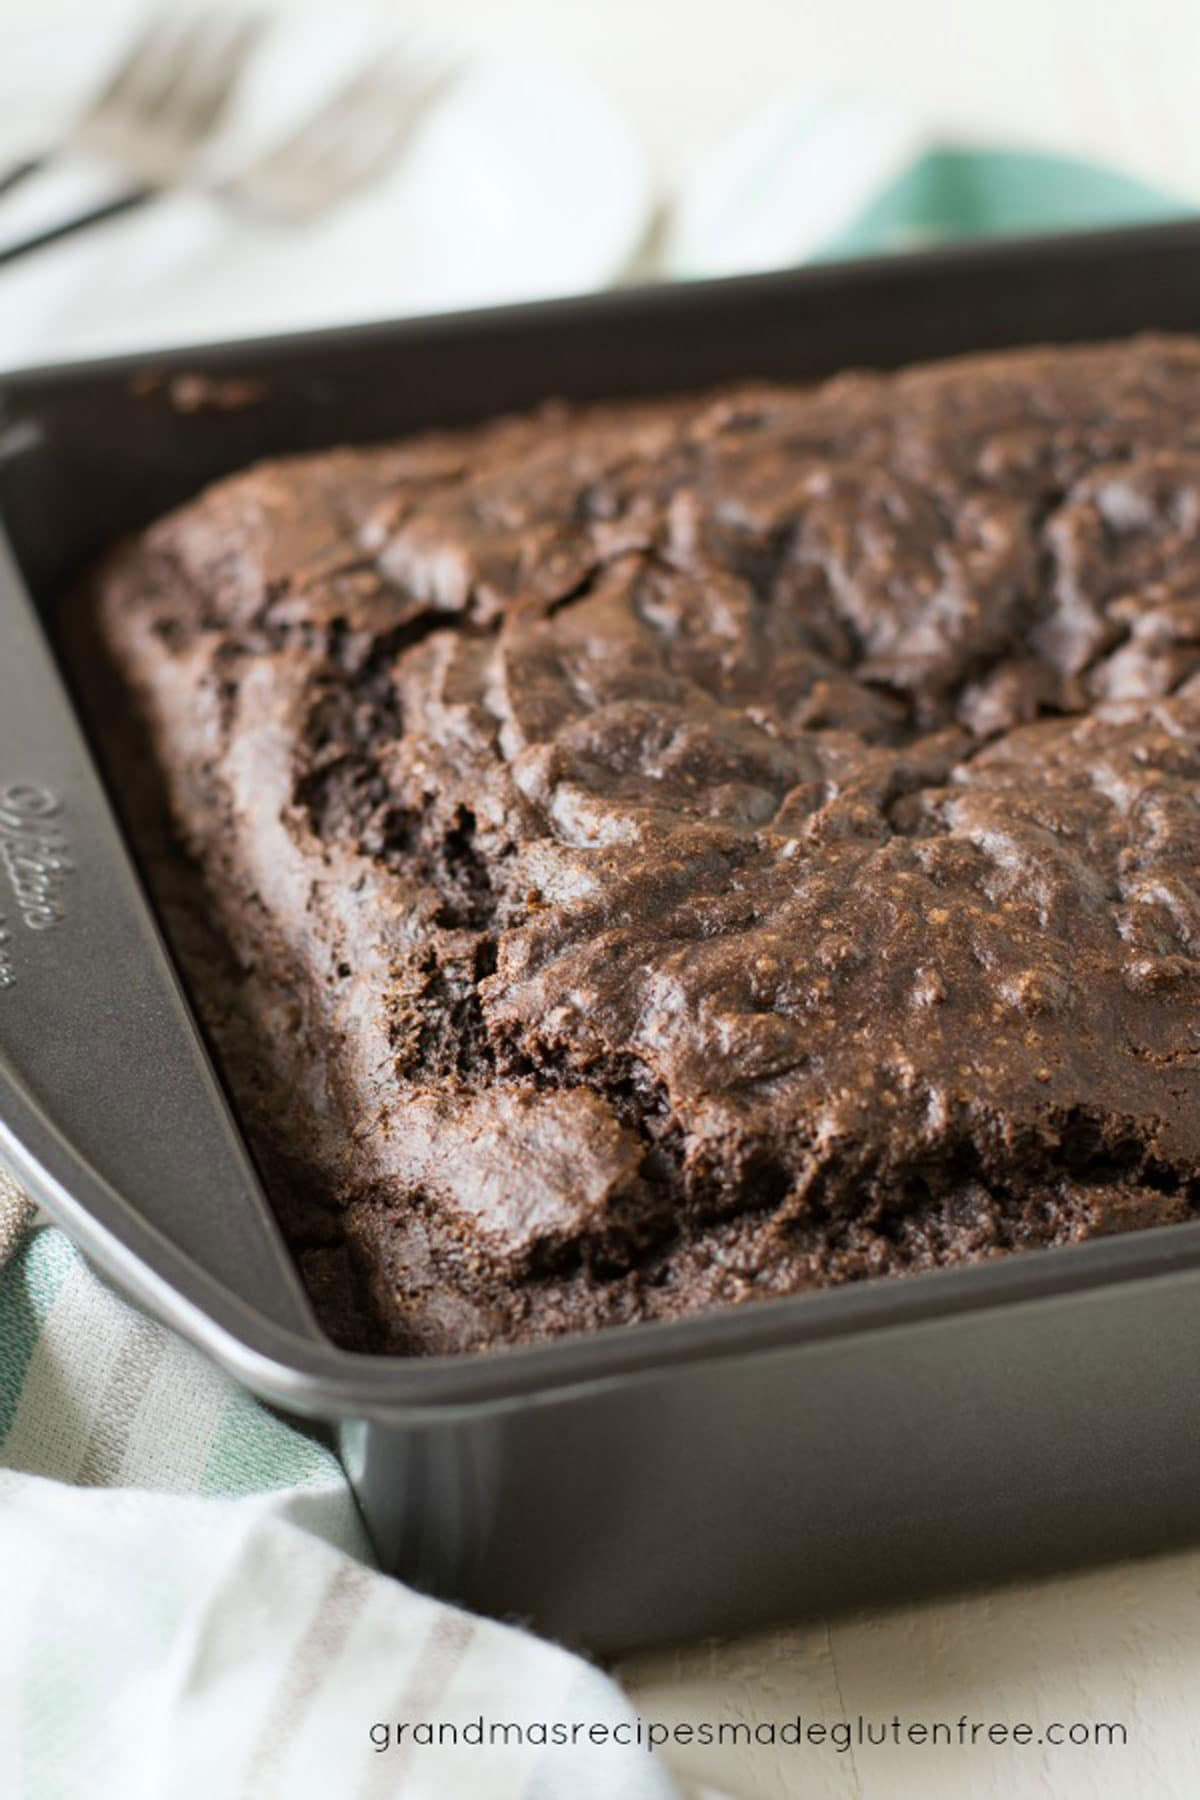 a delicious gluten free chocolate cake in an 8x8 pan